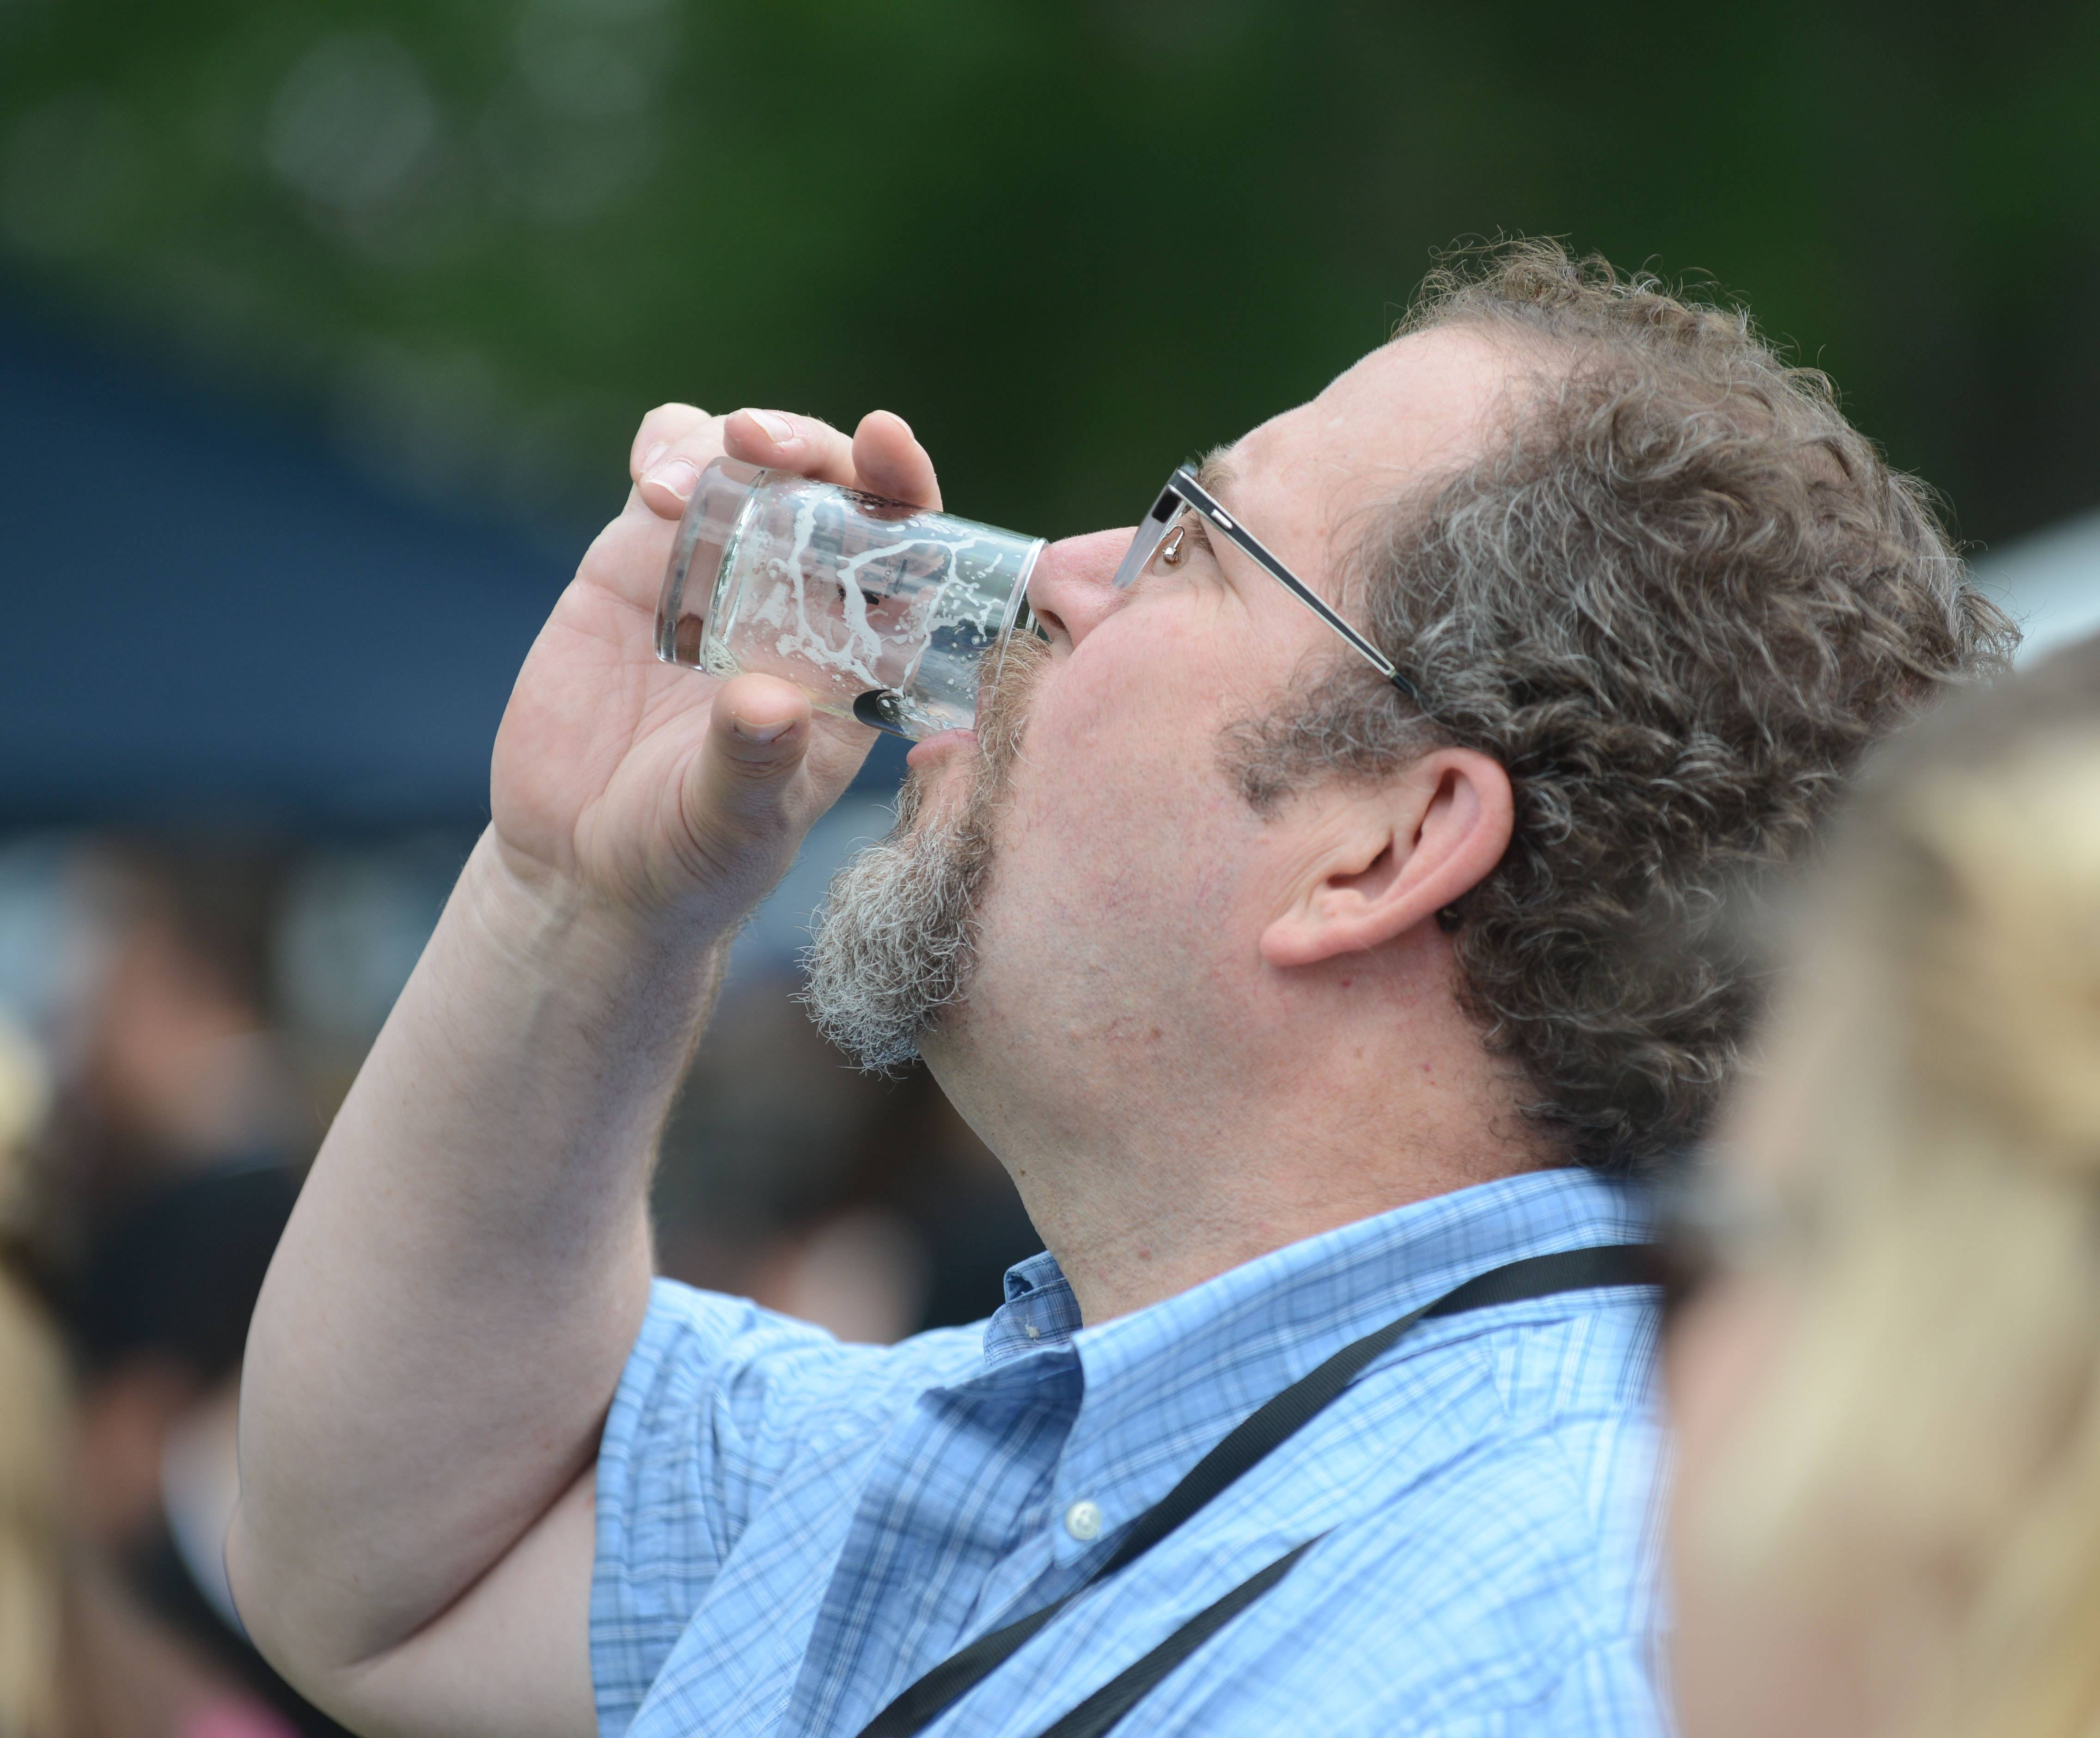 Kelly Fullerton of Naperville enjoys his beer to the last drop. The Naperville Ale Fest Saturday at Naper Settlement featured more than 180 beers from craft breweries around the country. A portion of the proceeds will benefit Naper Settlement and the Naperville Heritage Society.